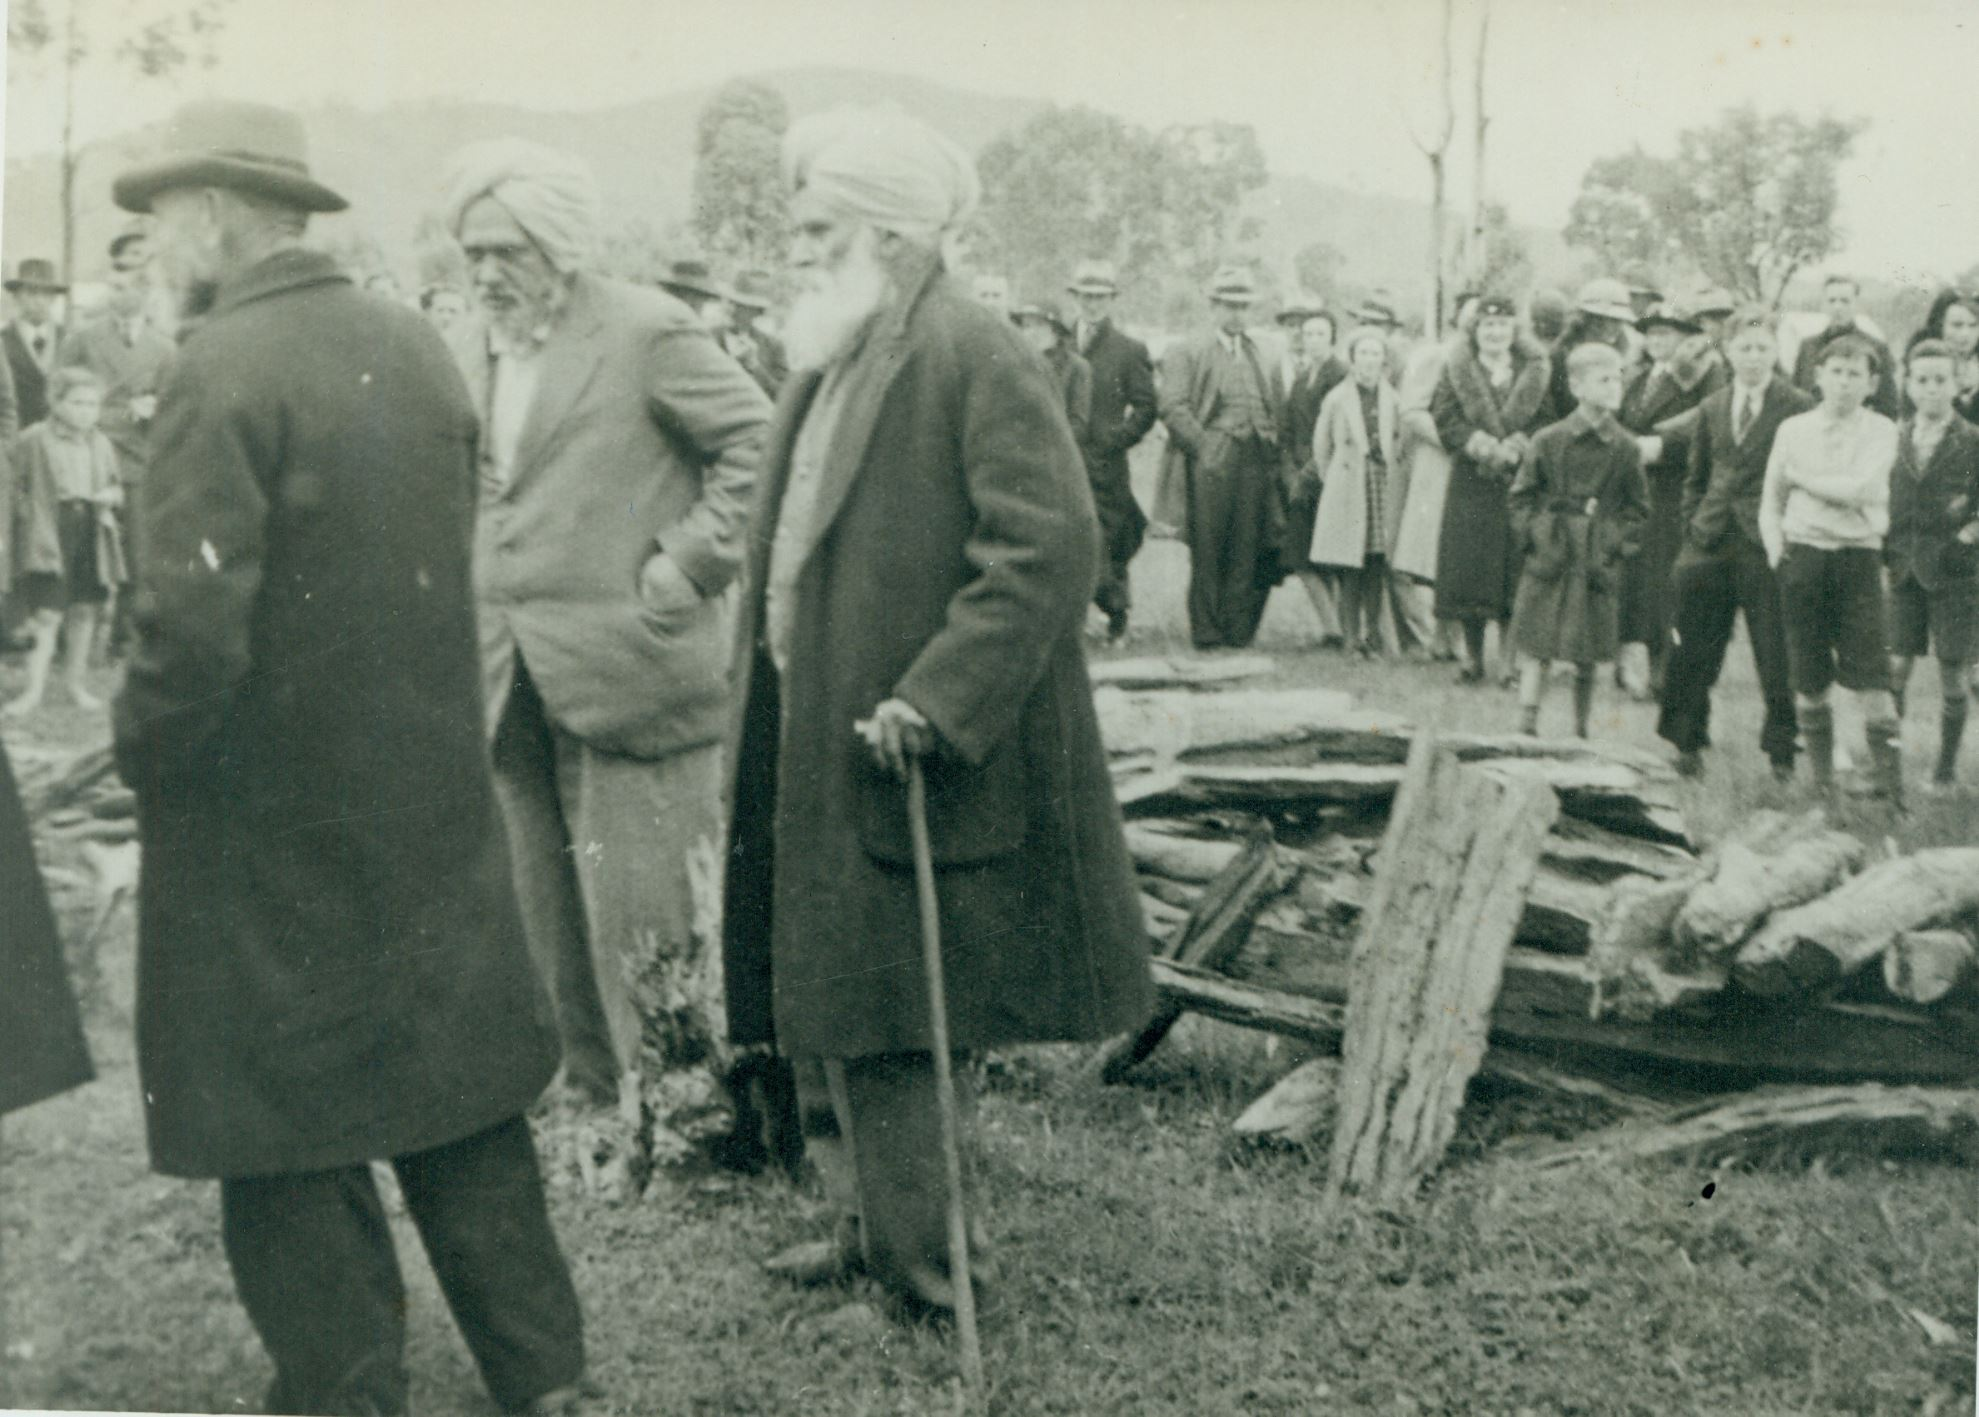 Rule Singh's Cremation On 25 June 1939 At Albury,  Indian Cemetery, NSW, Now Jelbart Park. The Two Men Pictured Are; Left: Purtab Singh And Right: Currum Singh Who Organised The Cremation.  Currum Singh Read The Ceremony.  Photo: R. J. Fielder Courtesy Of Albury Museum NSW.